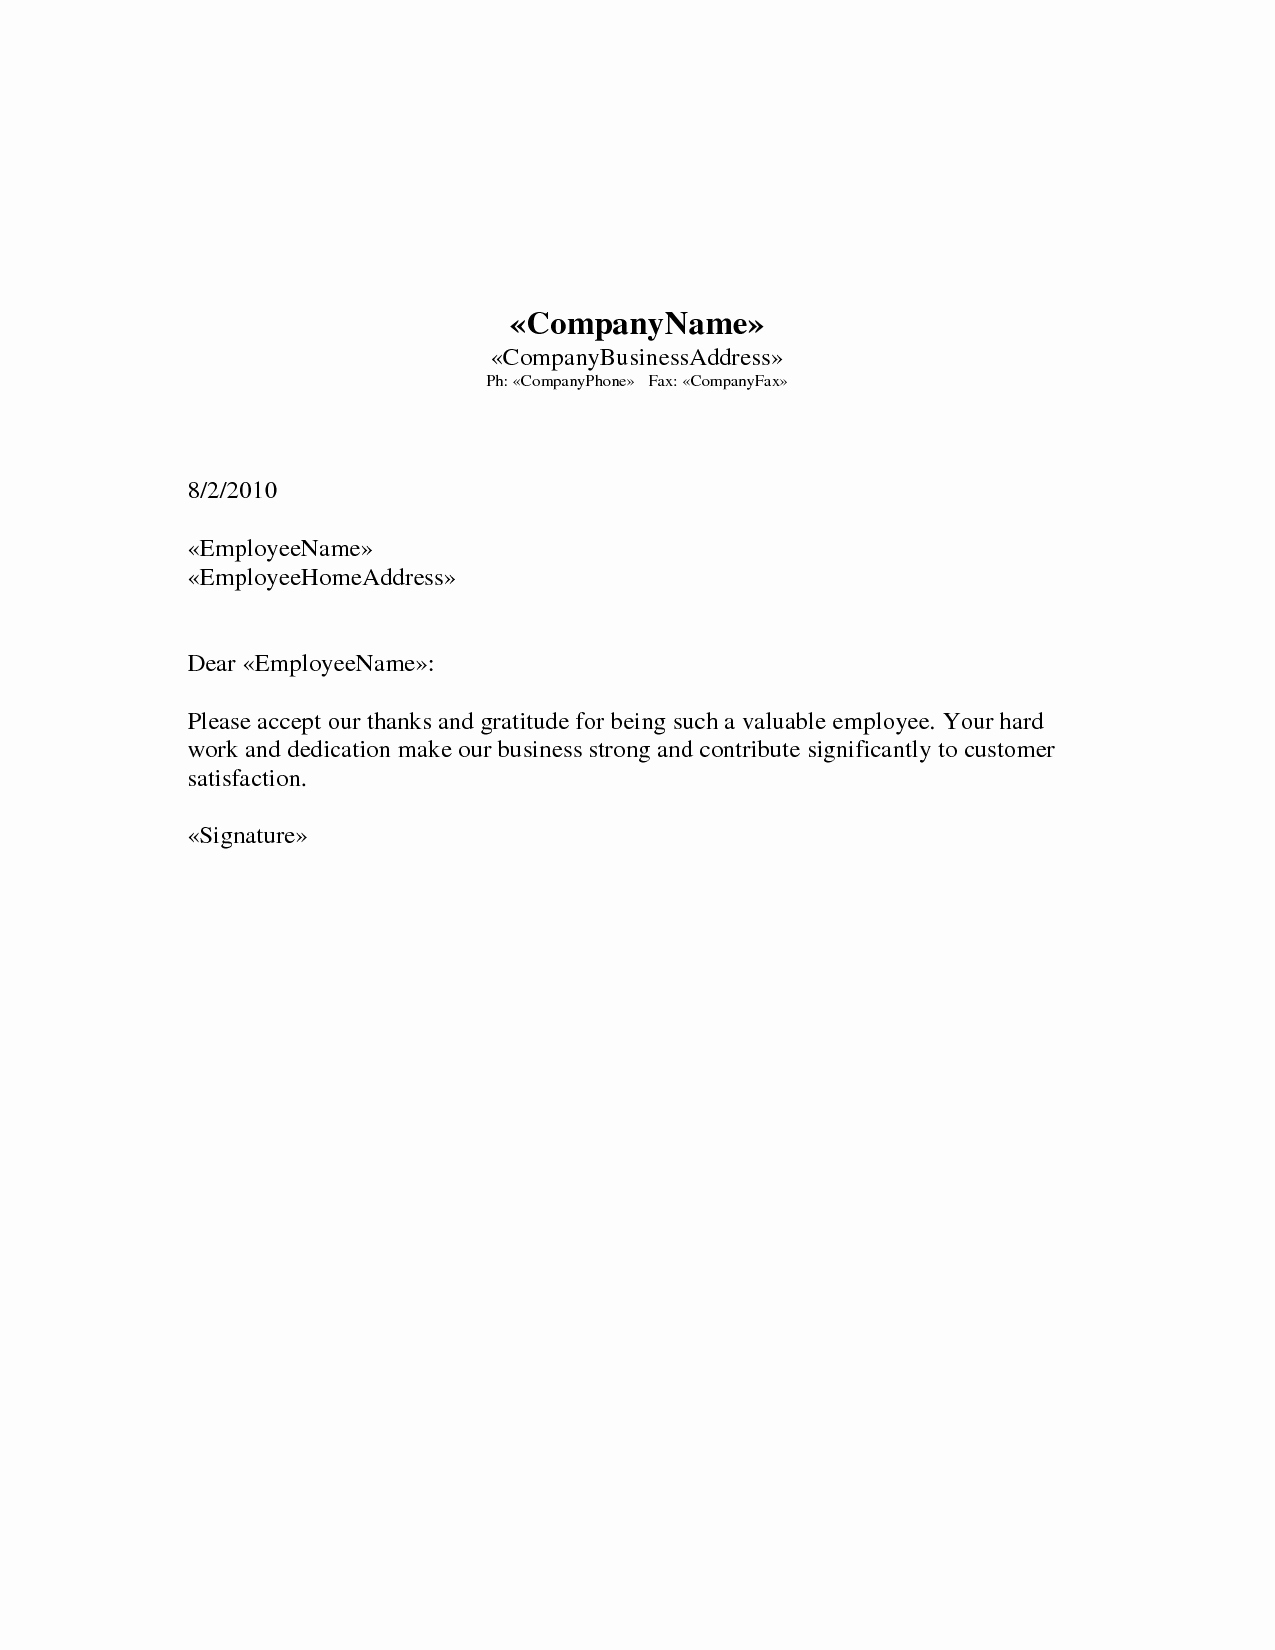 Sample Letters for Employees Awesome Best S Of Appreciation Letter to Employee for Hard